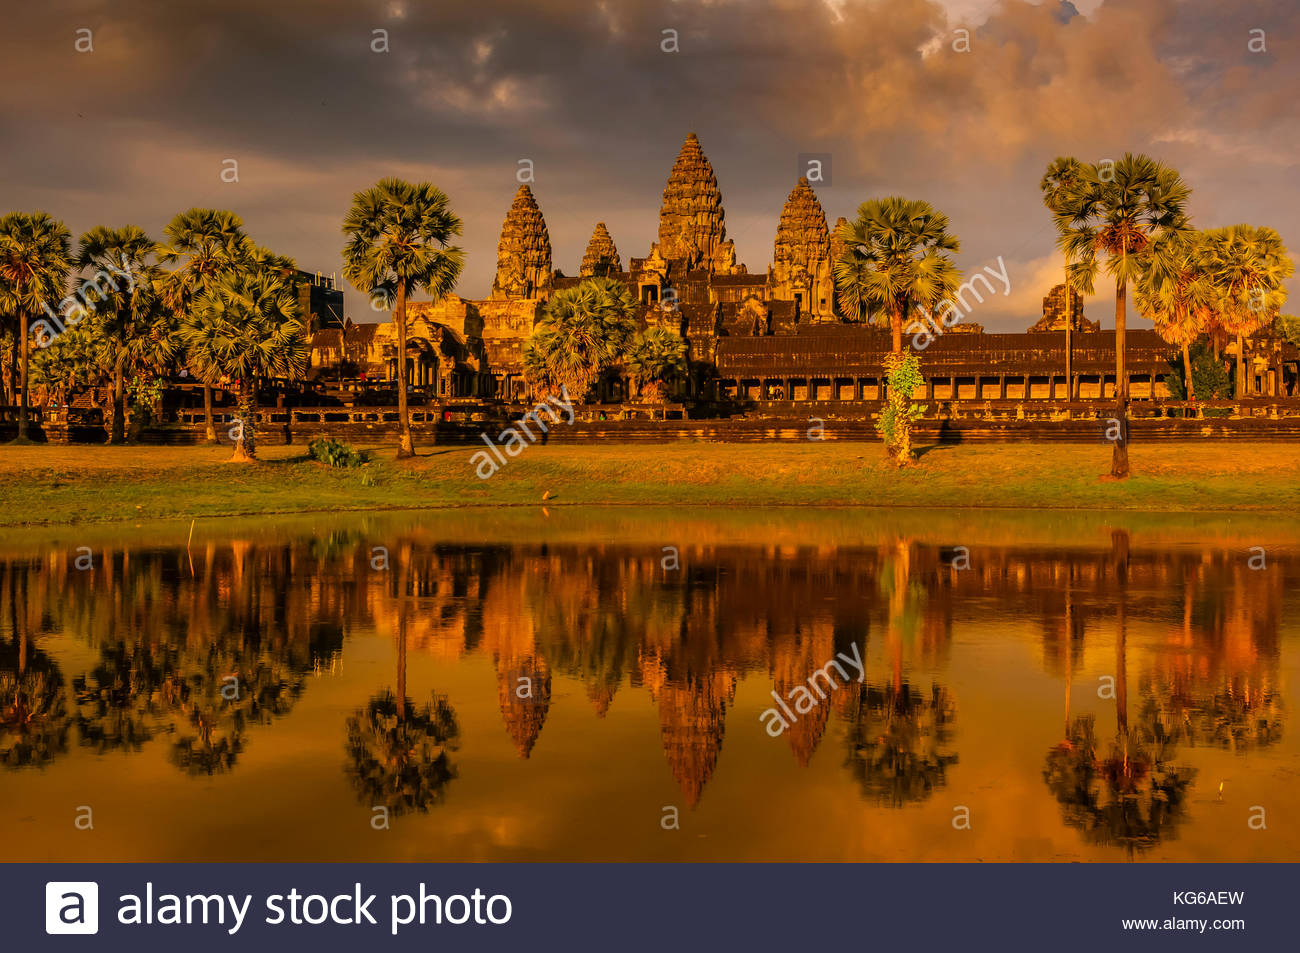 Angkor Wat, the largest religious monument in the world (means City which is a Temple); Cambodia. - Stock Image